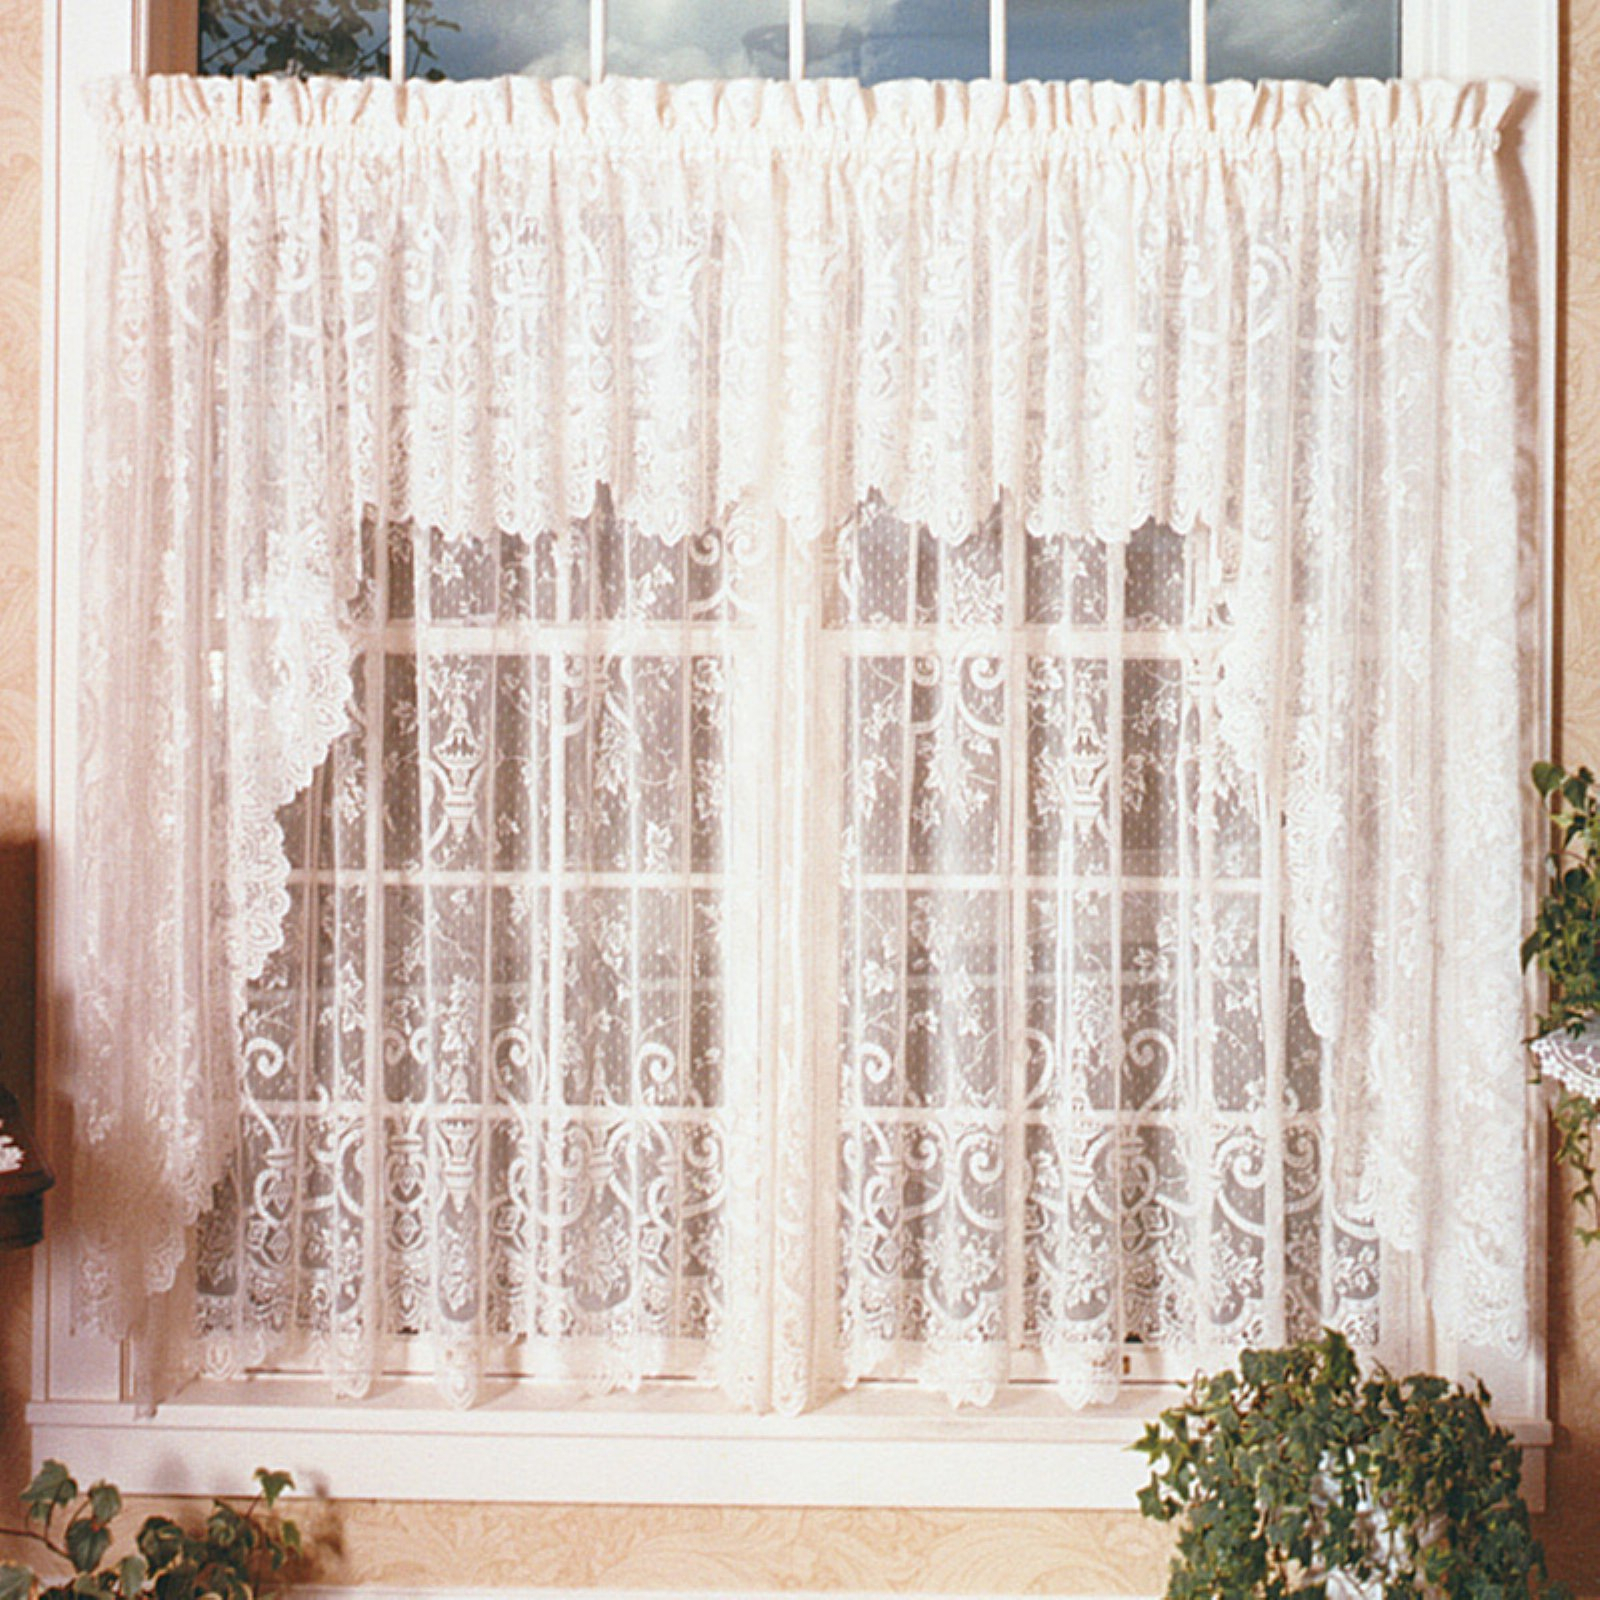 Heritage Lace English Ivy Swag Pair White | Products In 2019 For French Vanilla Country Style Curtain Parts With White Daisy Lace Accent (View 20 of 20)